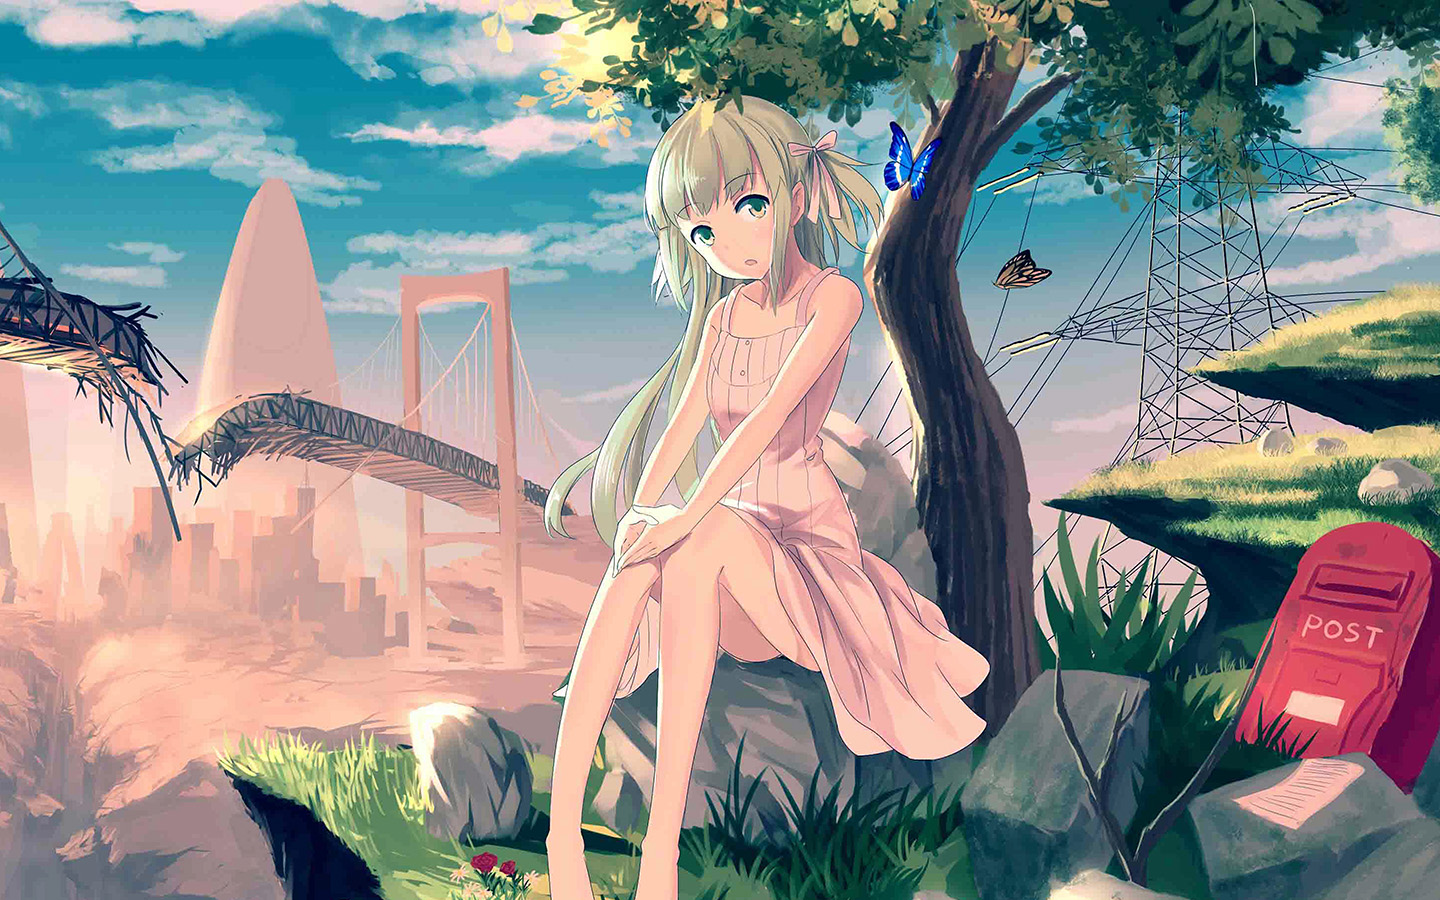 Au48 Cute Anime Girl Sunset Illustration Art Wallpaper